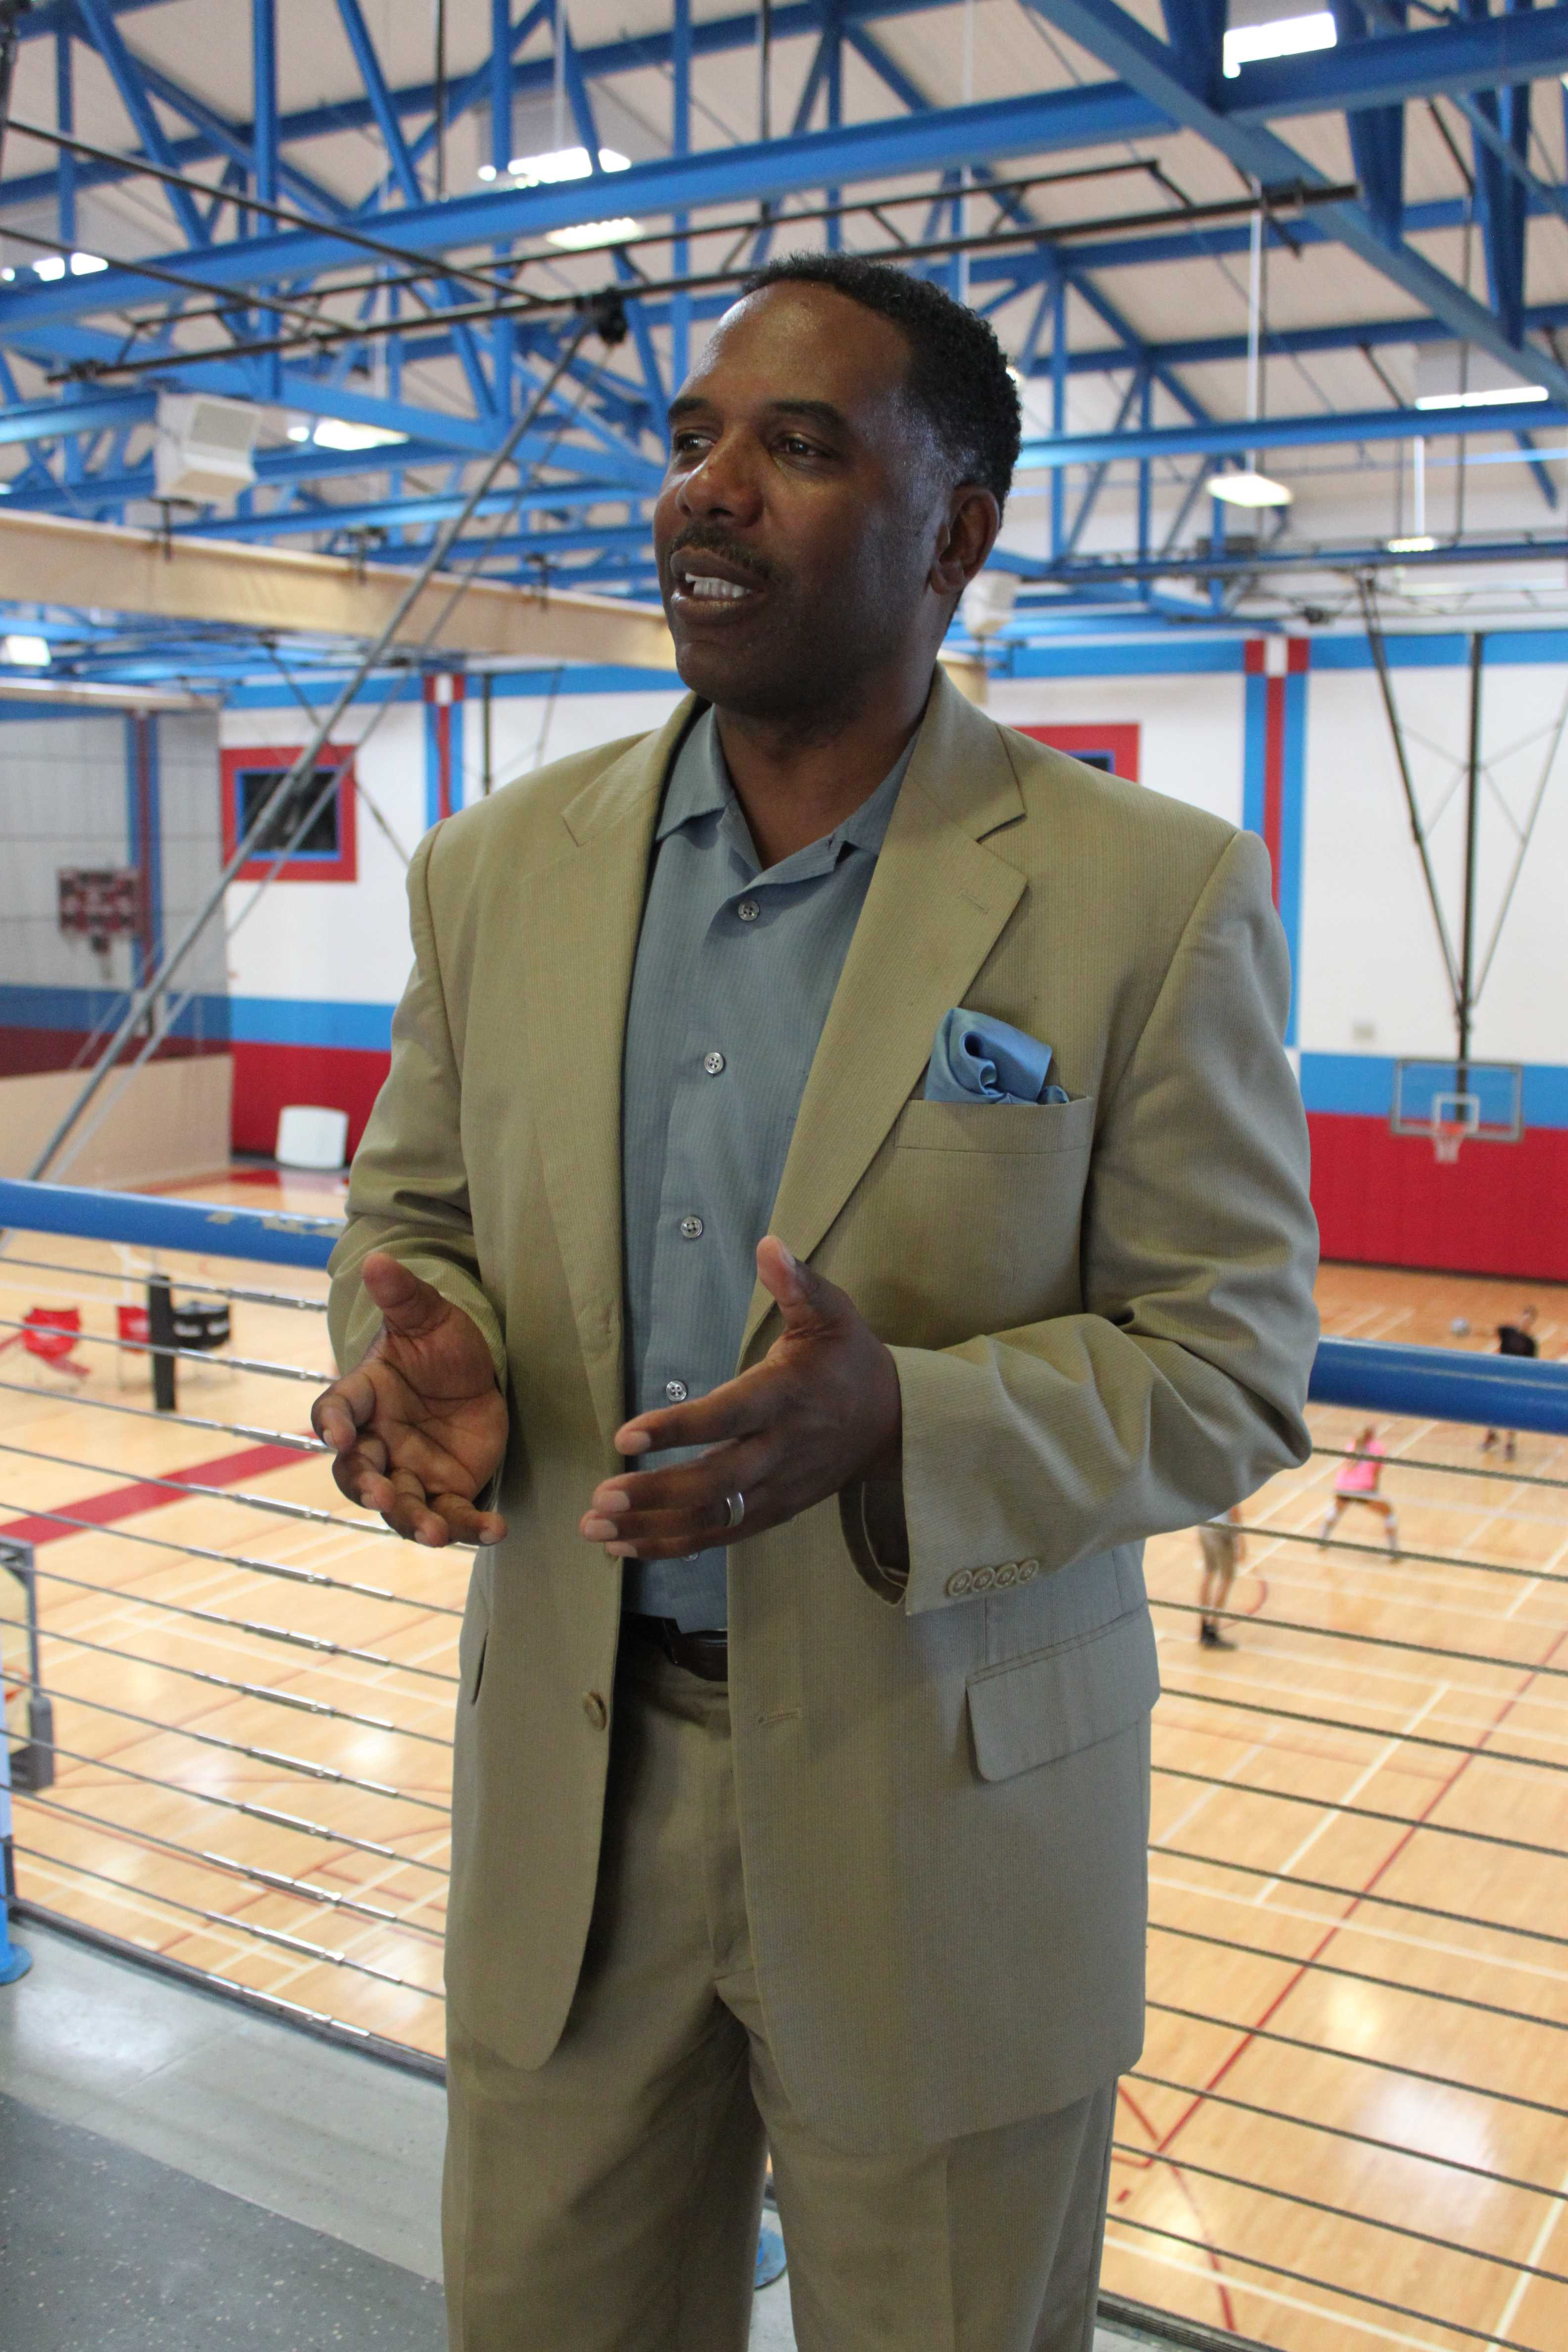 Acting Athletic Director Larry Maxey stresses the importance of athletes establishing themselves as individuals, off the field and court. Photo credit: Miguel Cid